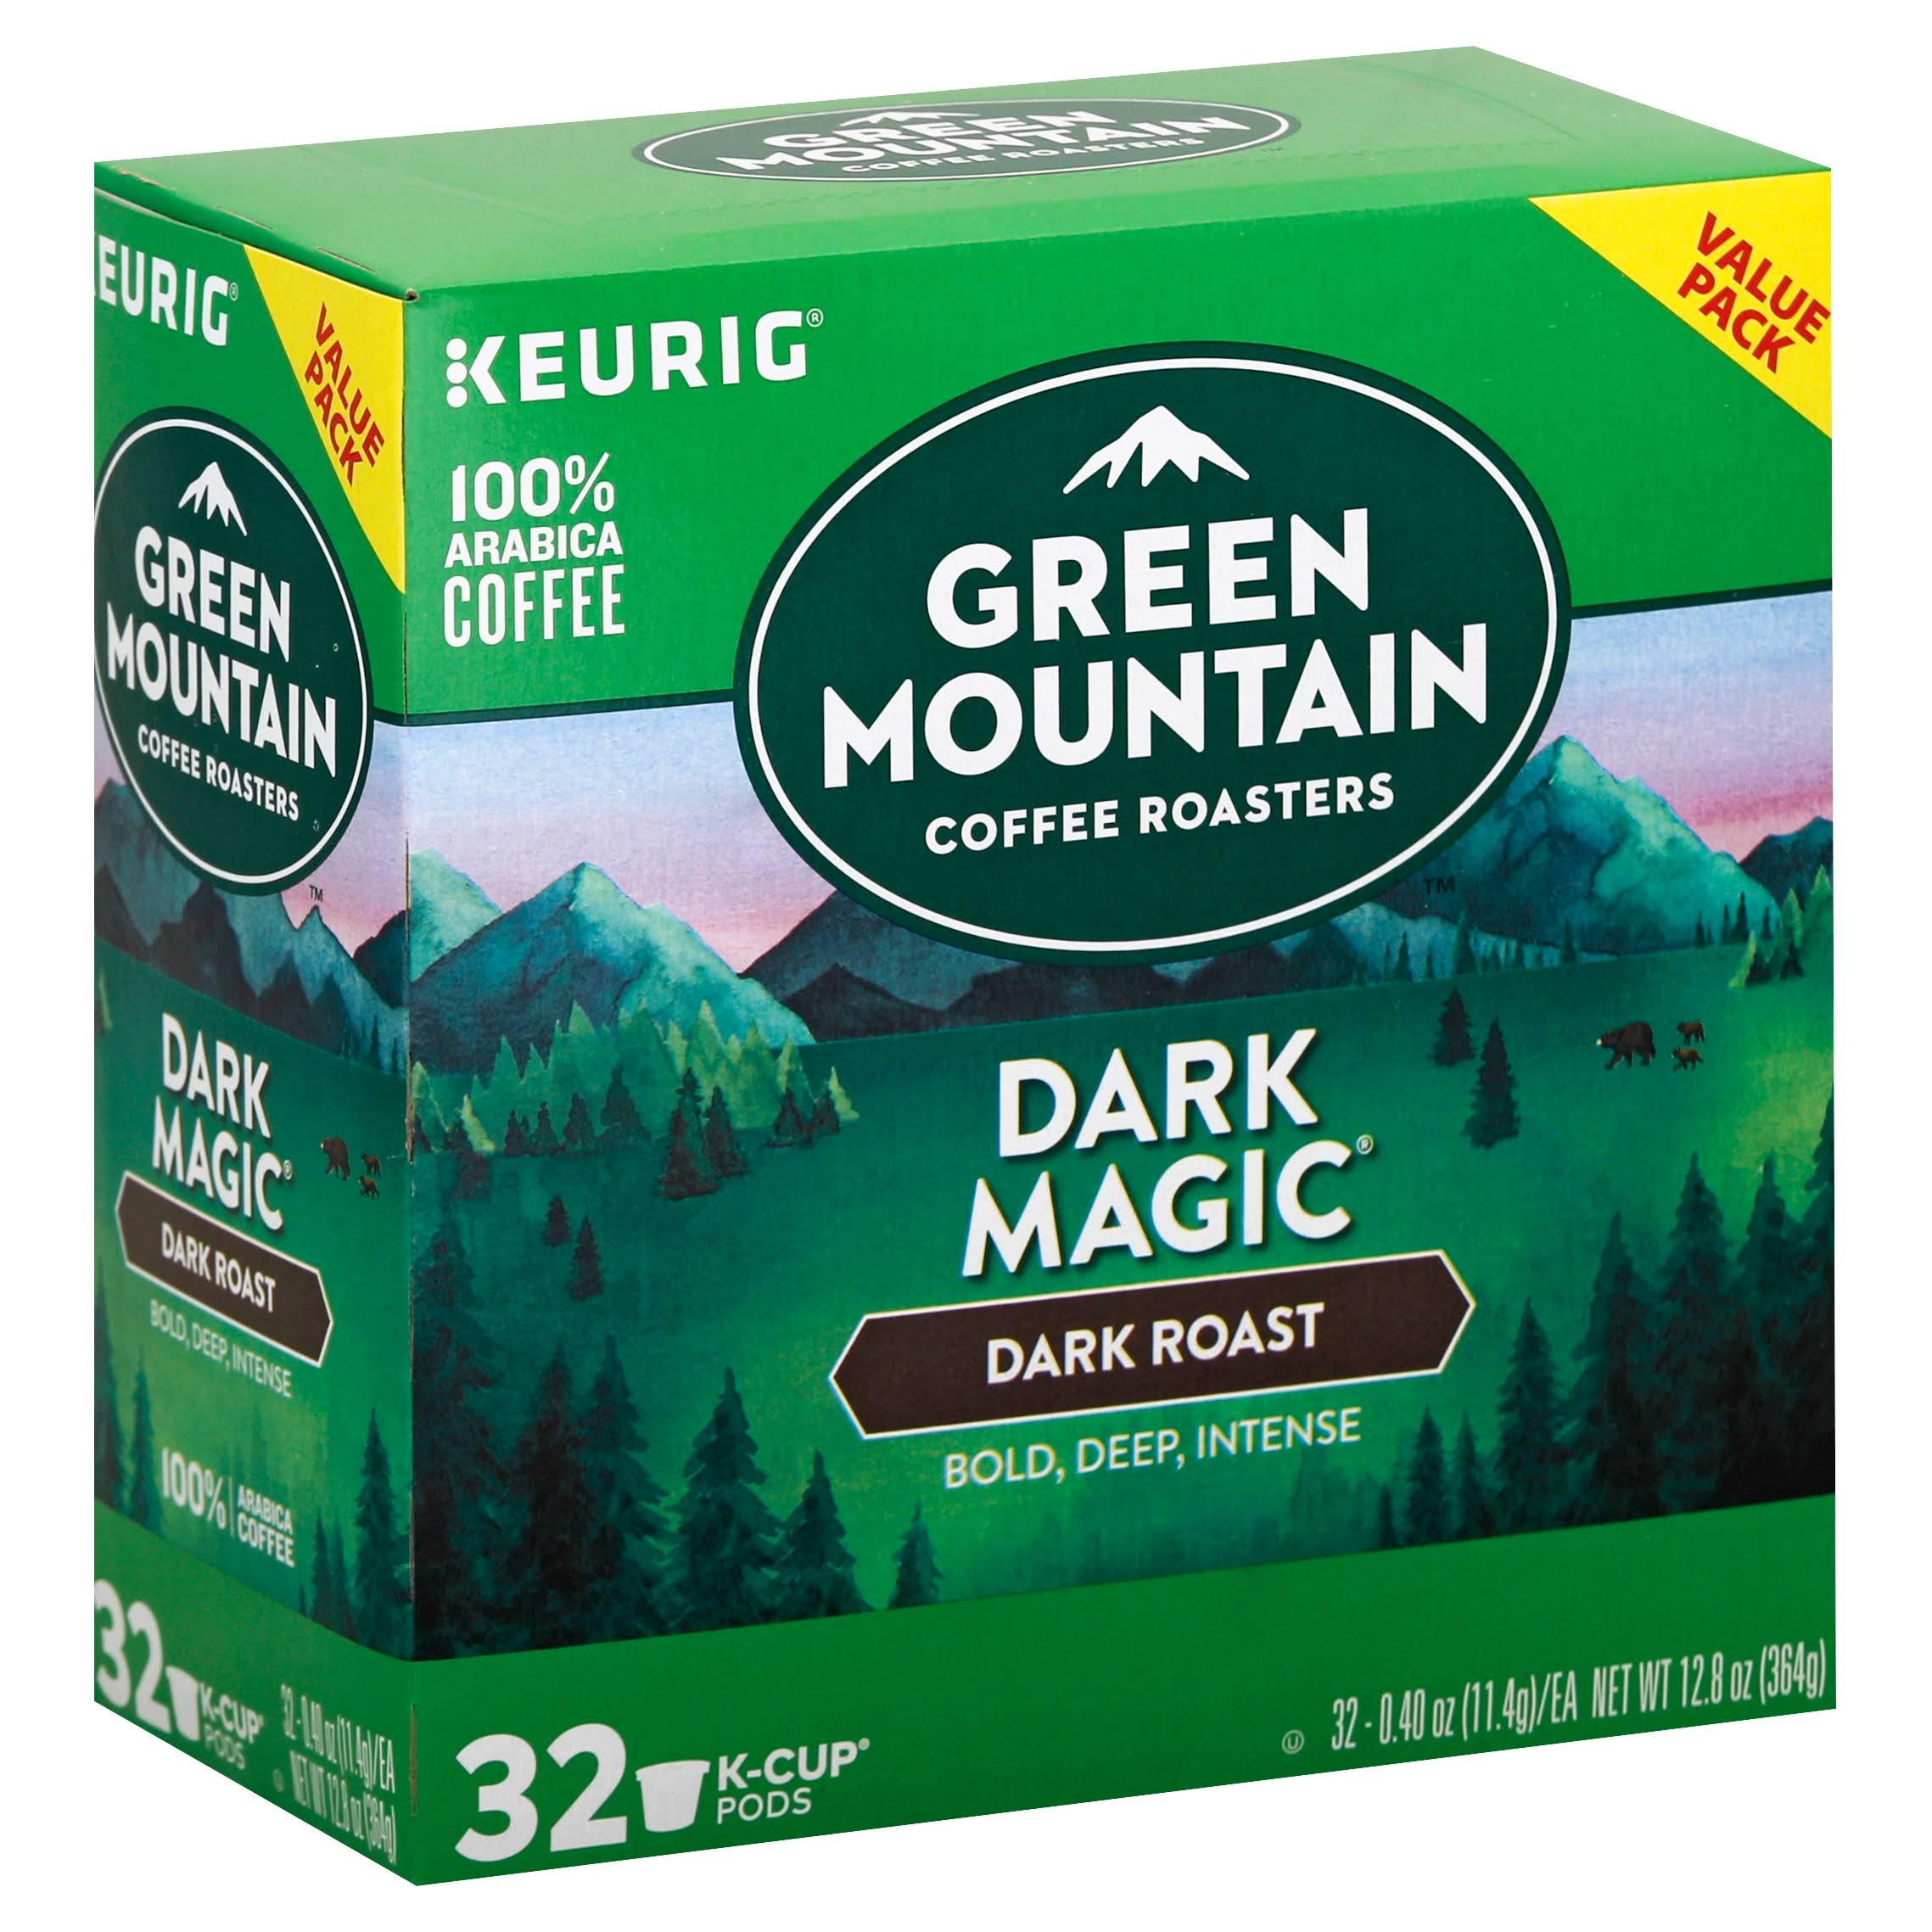 Green Mountain Keurig Coffee, 100% Arabica, Dark Roast, Dark Magic, K-Cup Pods, Value Pack - 32 pack, 0.40 oz pods